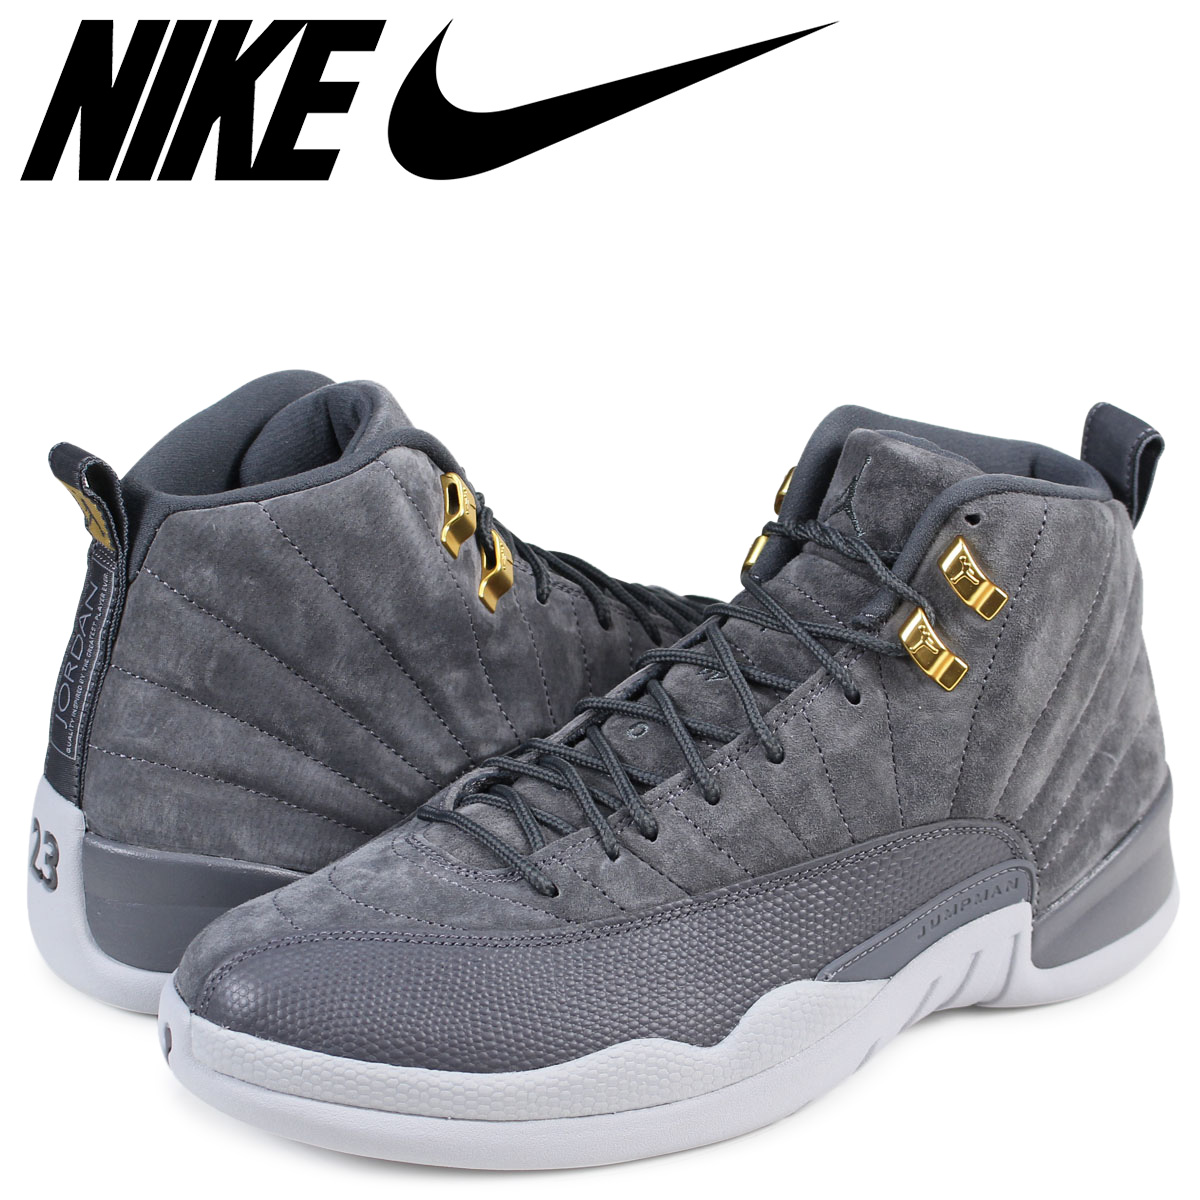 NIKE AIR JORDAN 12 RETRO Nike Air Jordan 12 nostalgic sneakers 130,690 005 men's gray